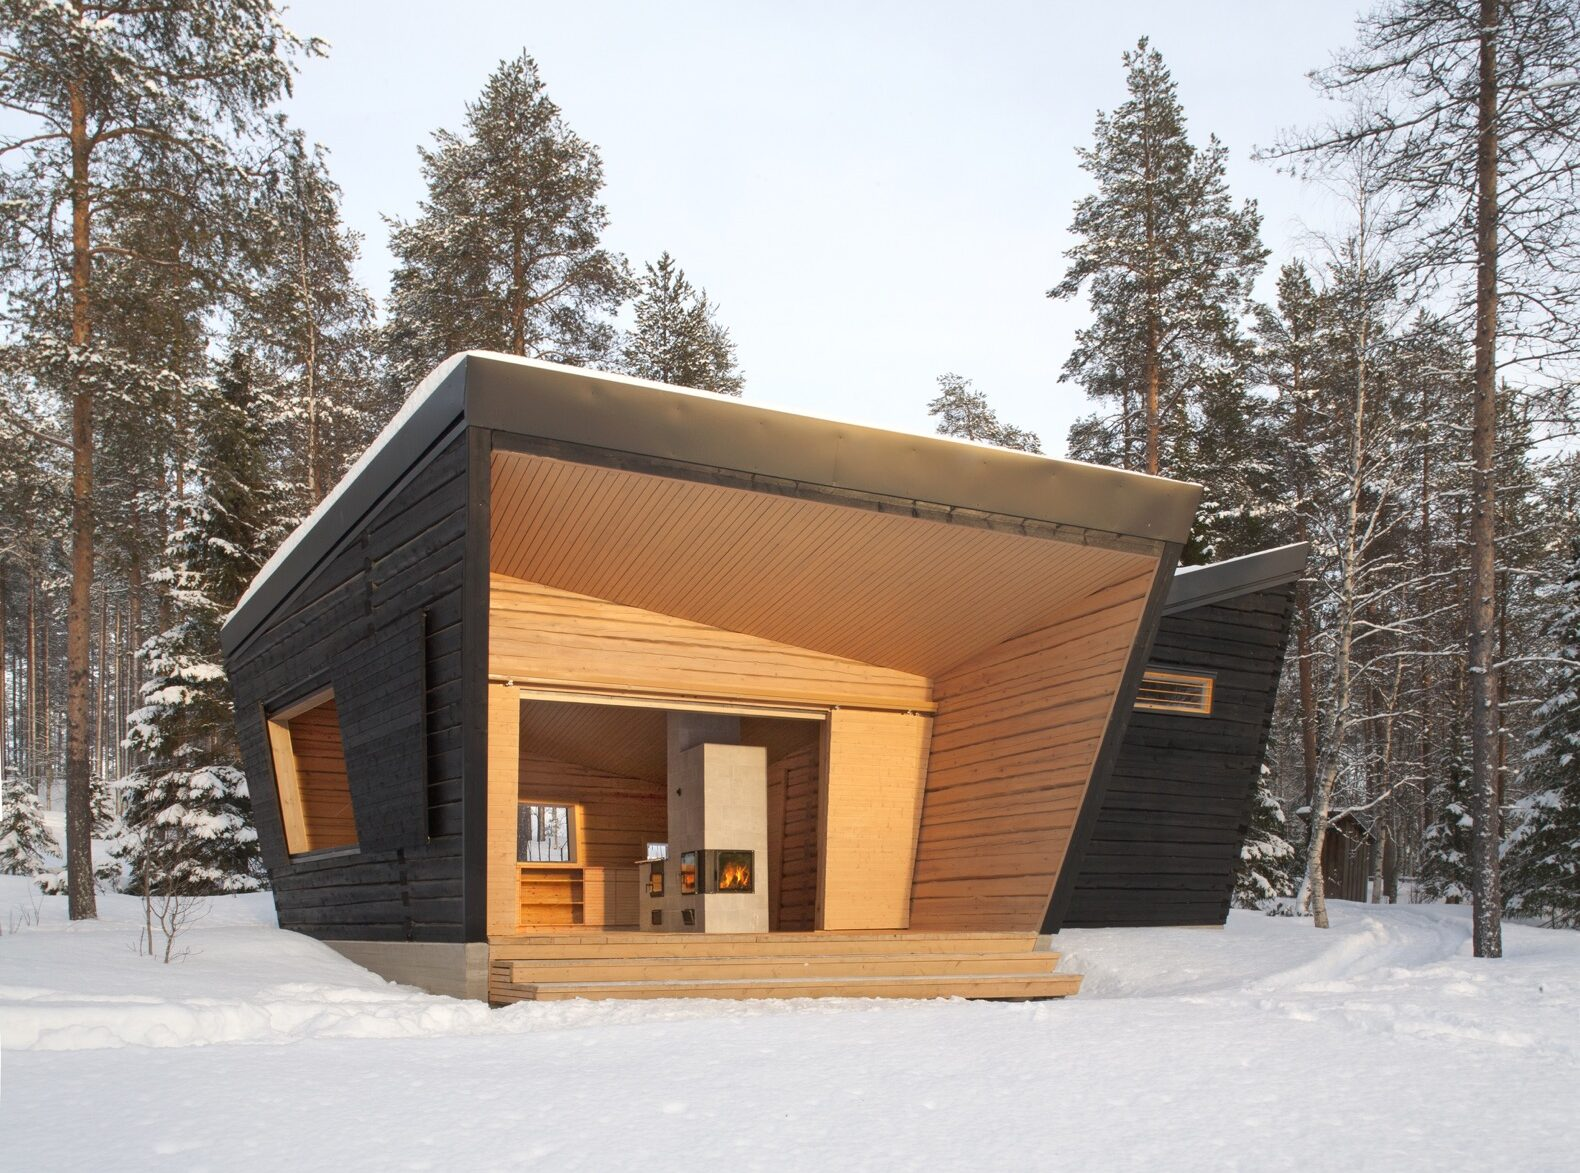 an angular building with a black wood facadel, light wood accents and an open entrance area in the middle of a snowy forest